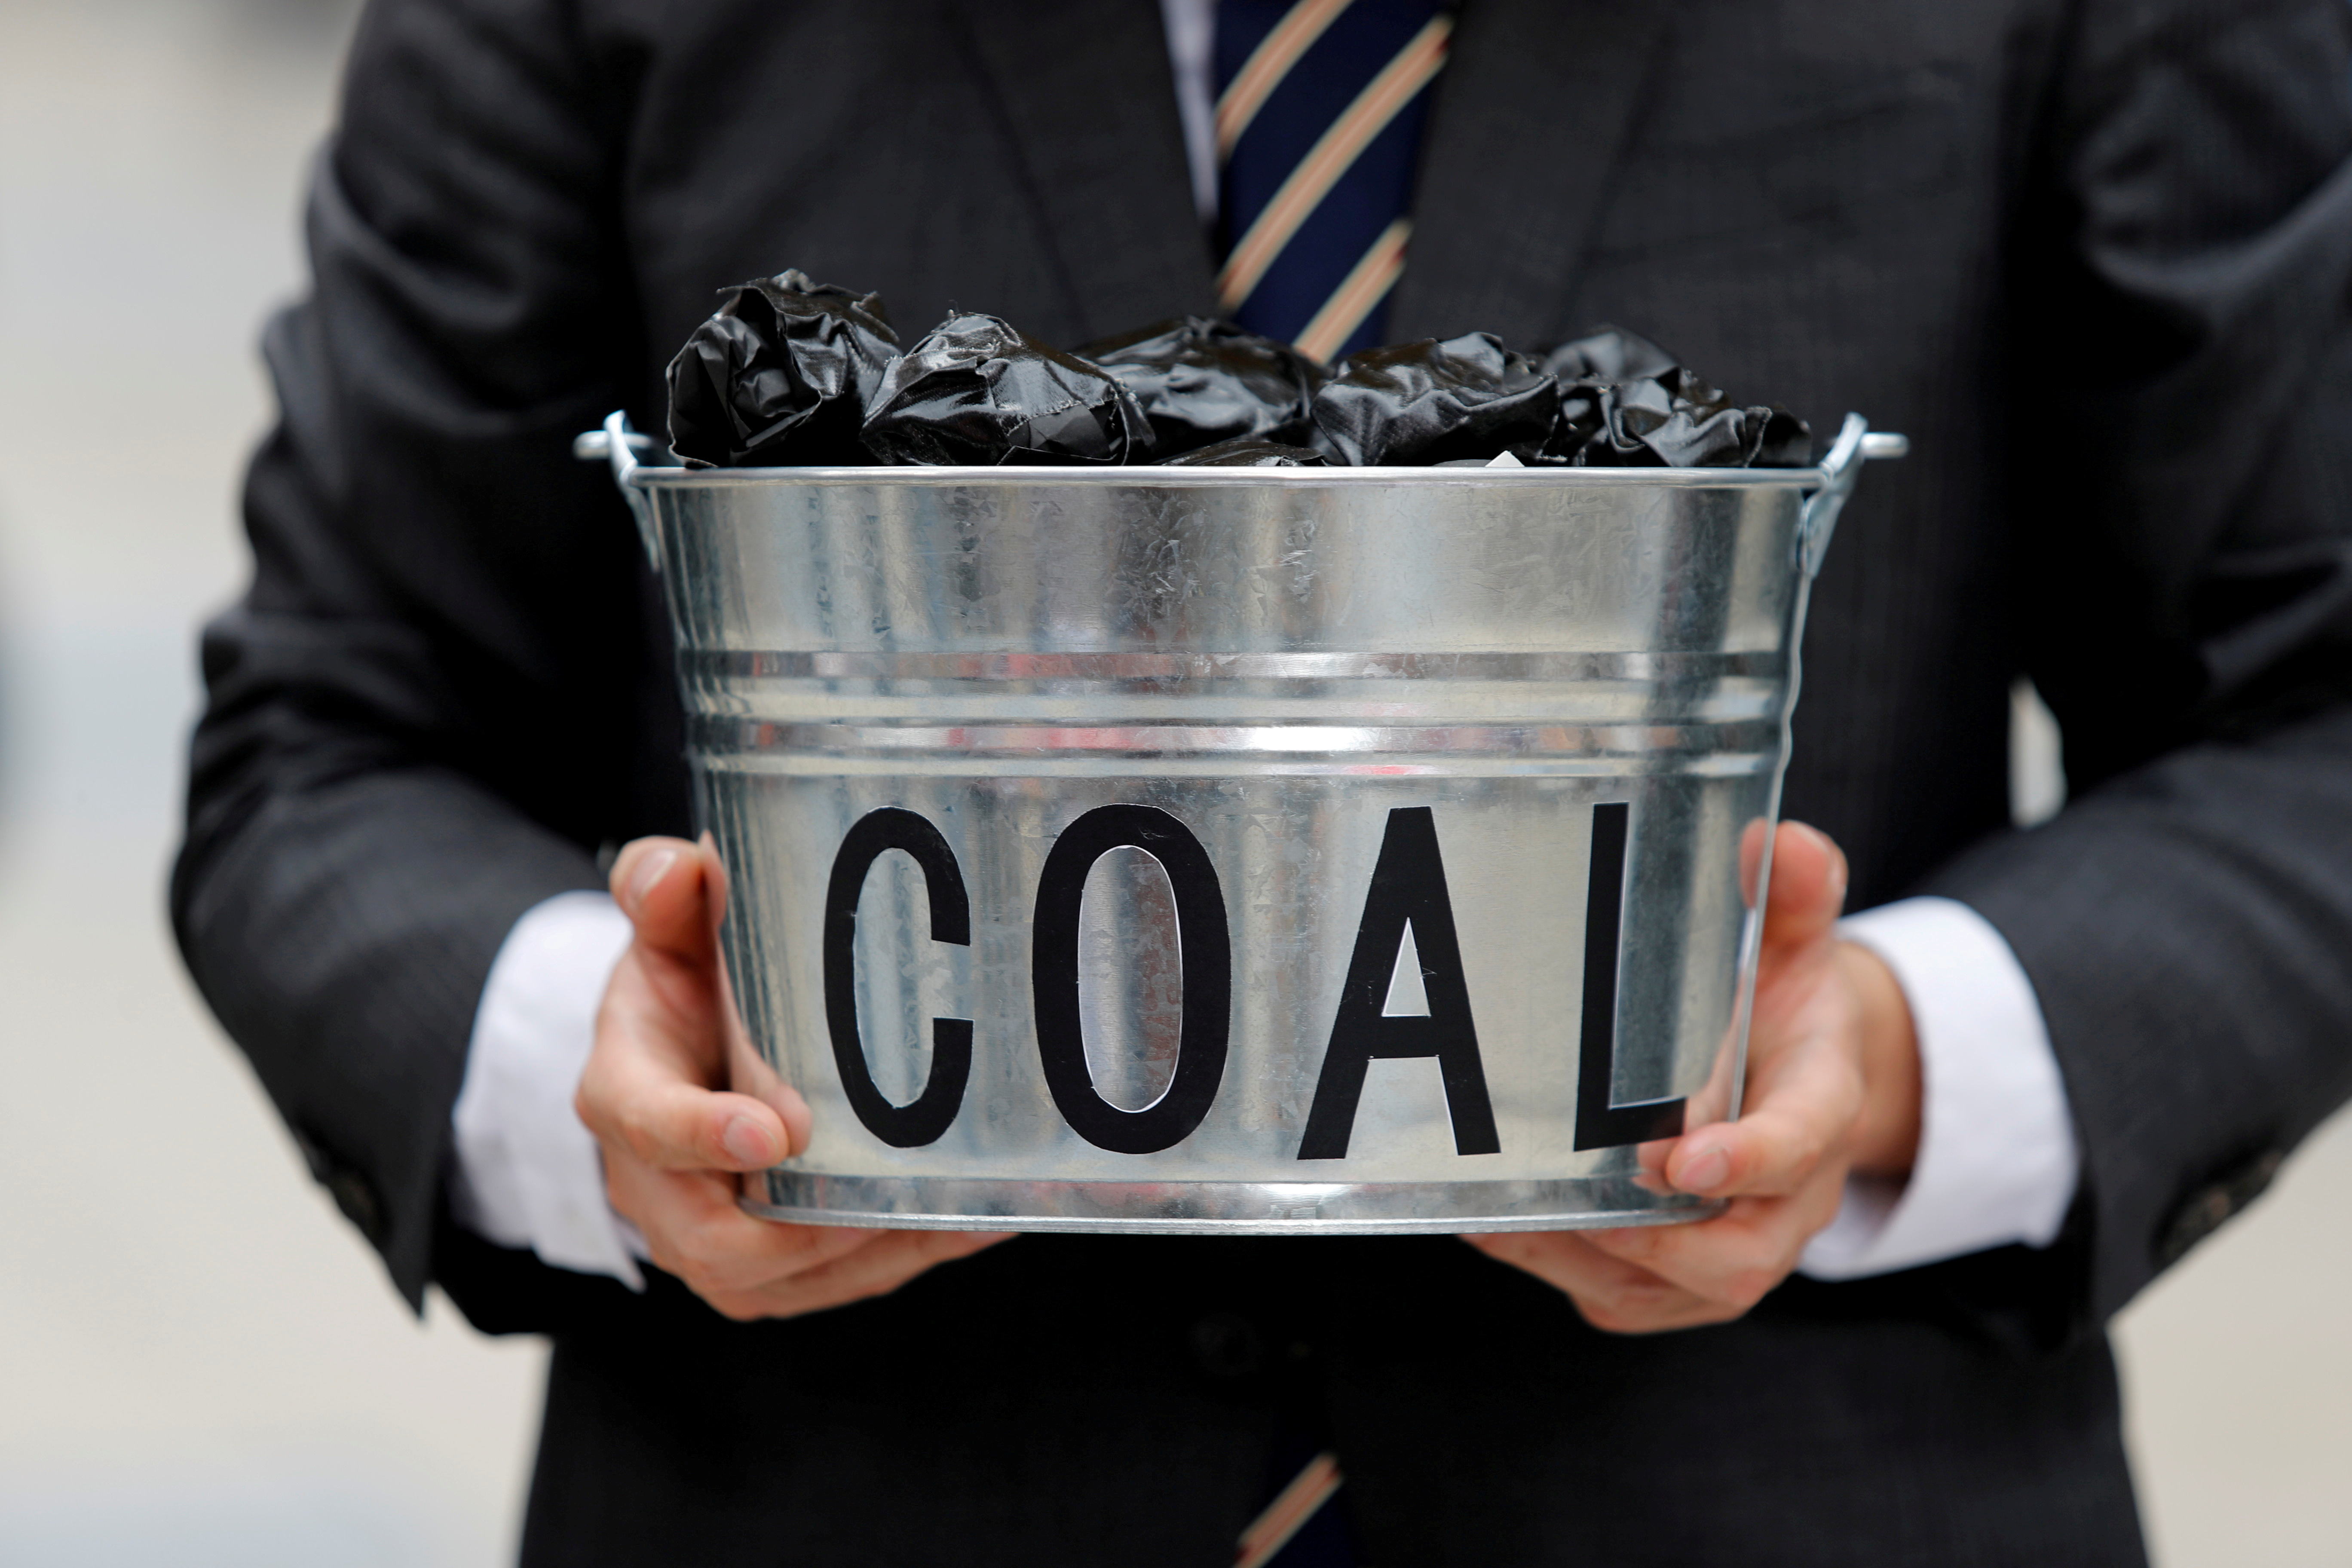 A protester holds a bucket of coal during a demonstration demanding Japan to stop supporting coal at home and overseas, at the G20 Summit in Osaka, Japan, June 28, 2019. REUTERS/Jorge Silva/File Photo